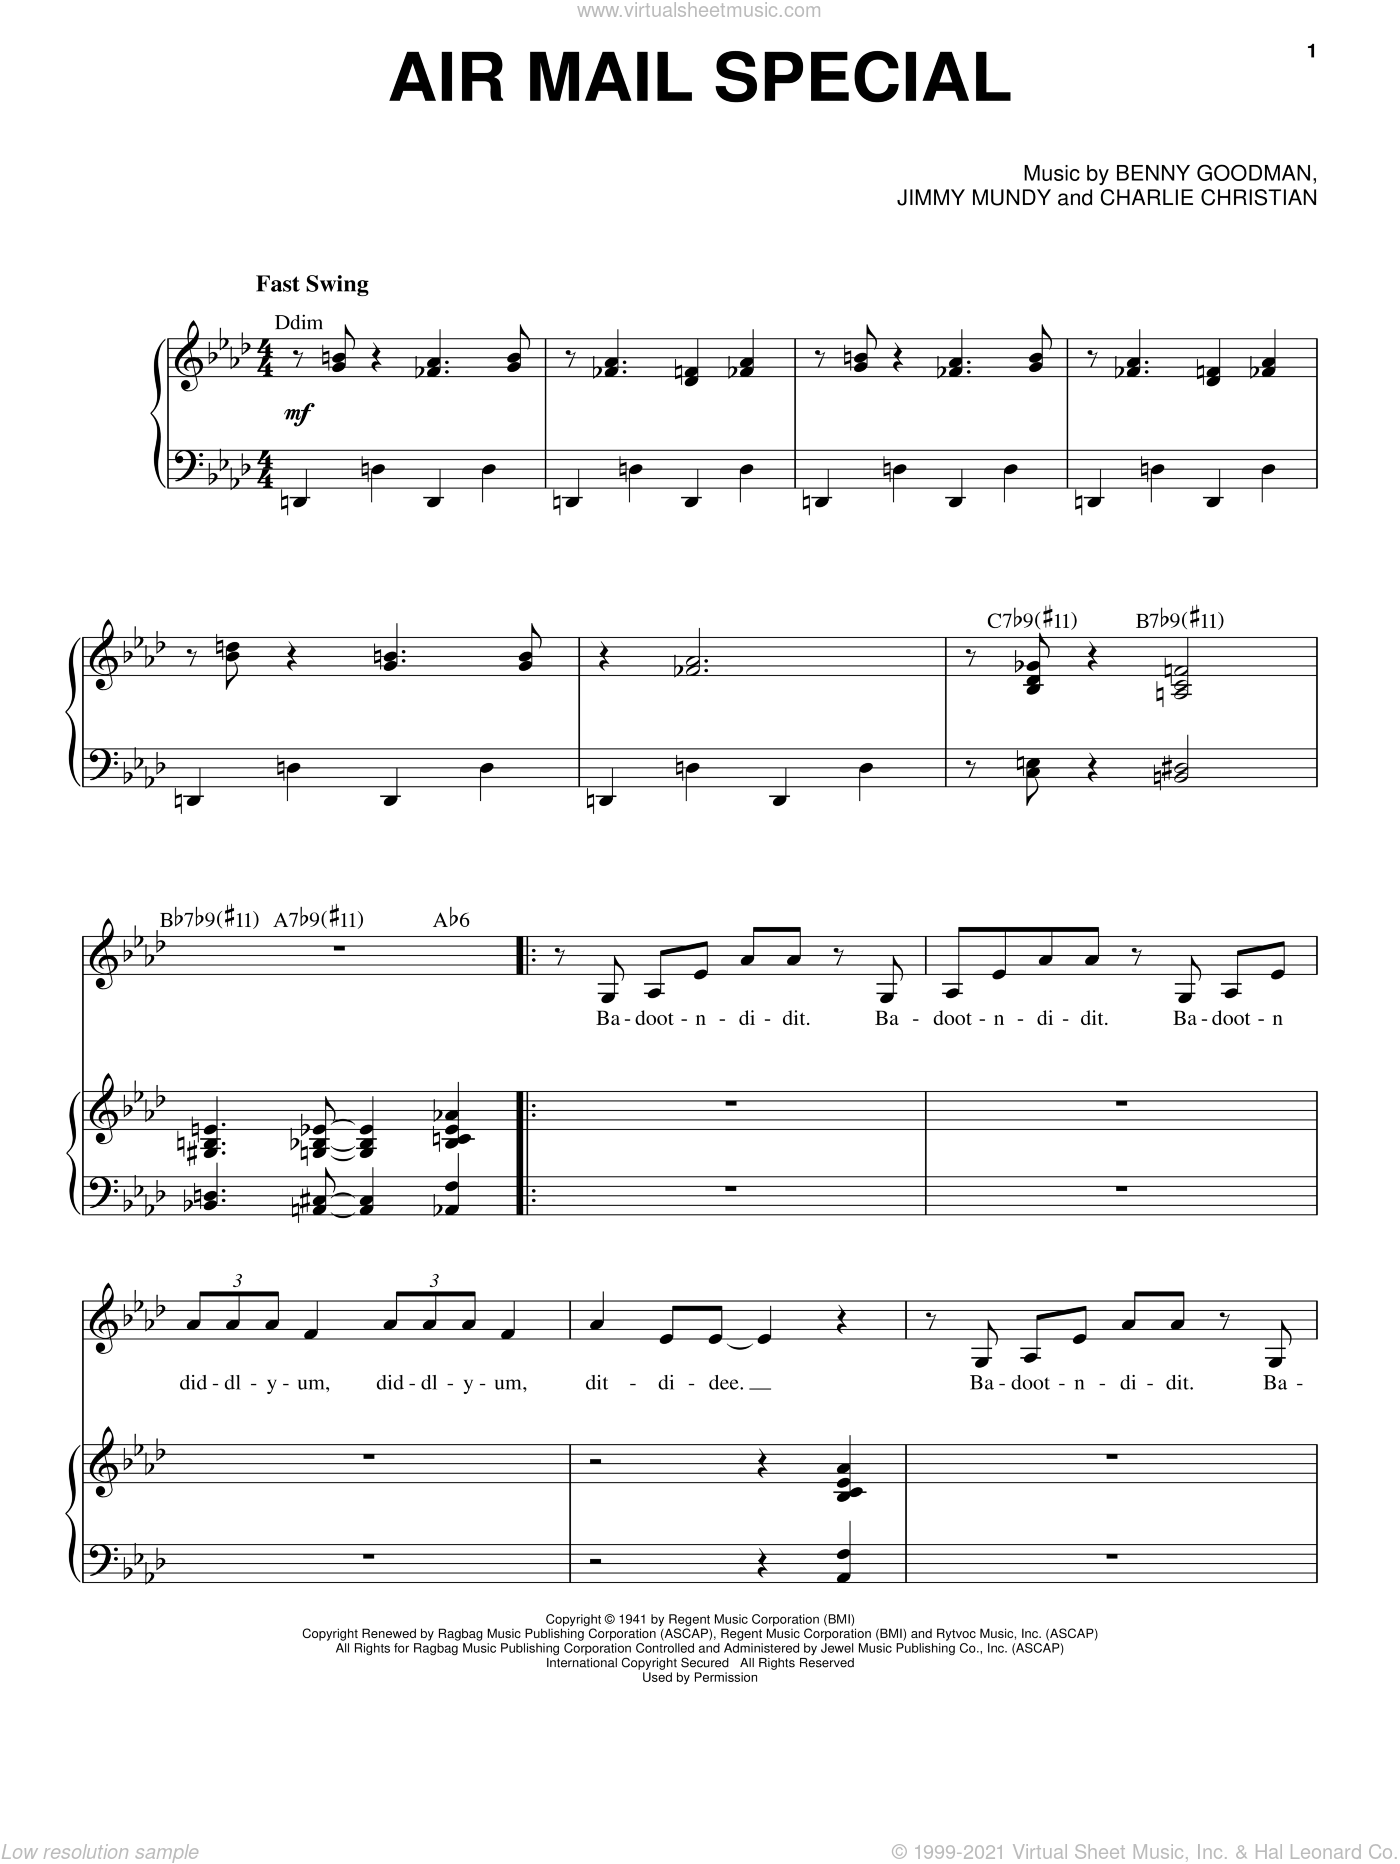 Air Mail Special sheet music for voice and piano by Nikki Yanofsky, Benny Goodman, Charlie Christian and Jimmy Mundy, intermediate skill level